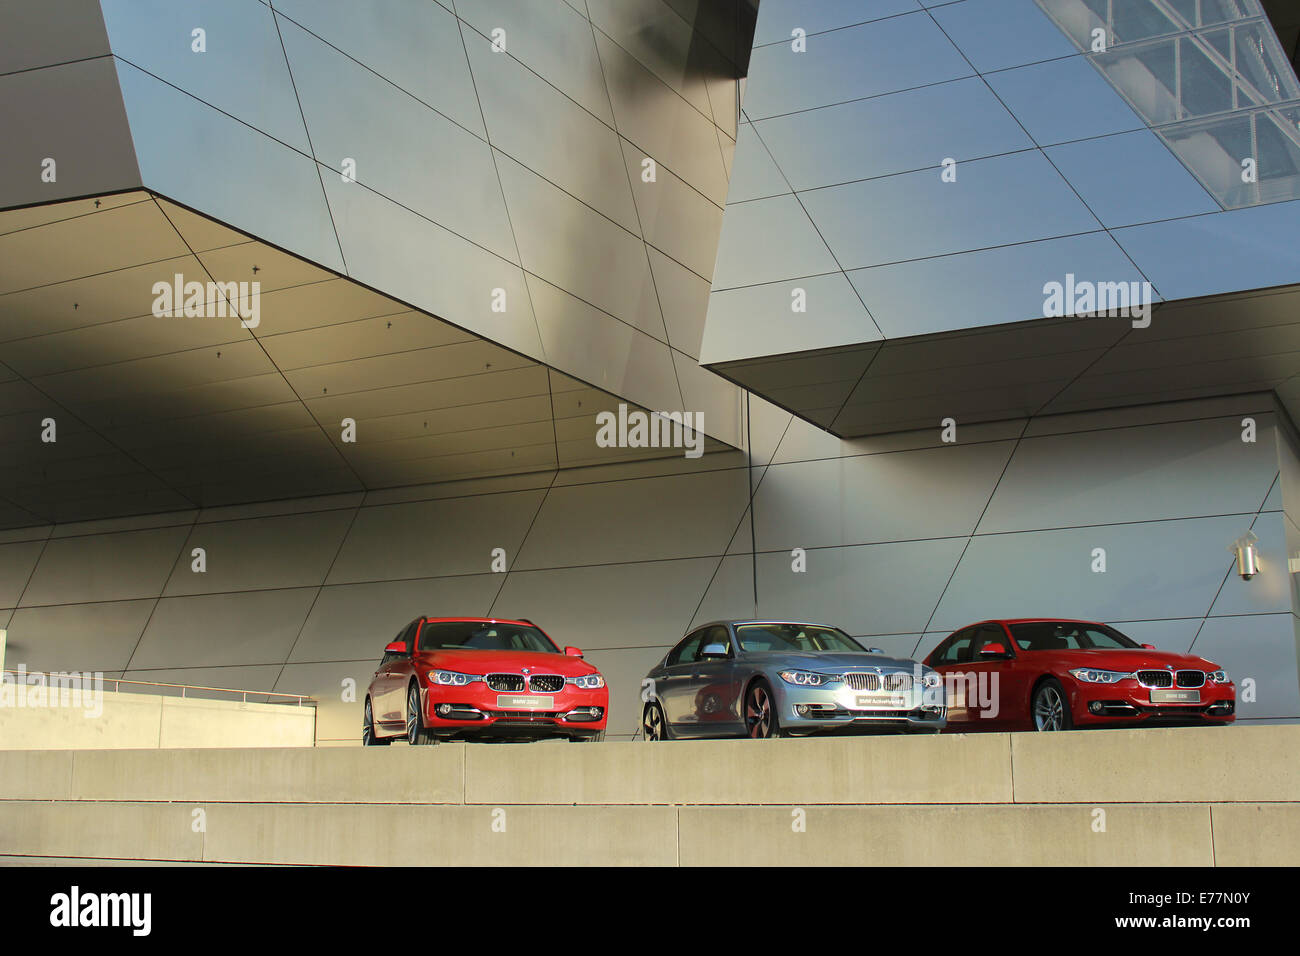 Outside view of the BMW Welt building, Münich, Germany. - Stock Image